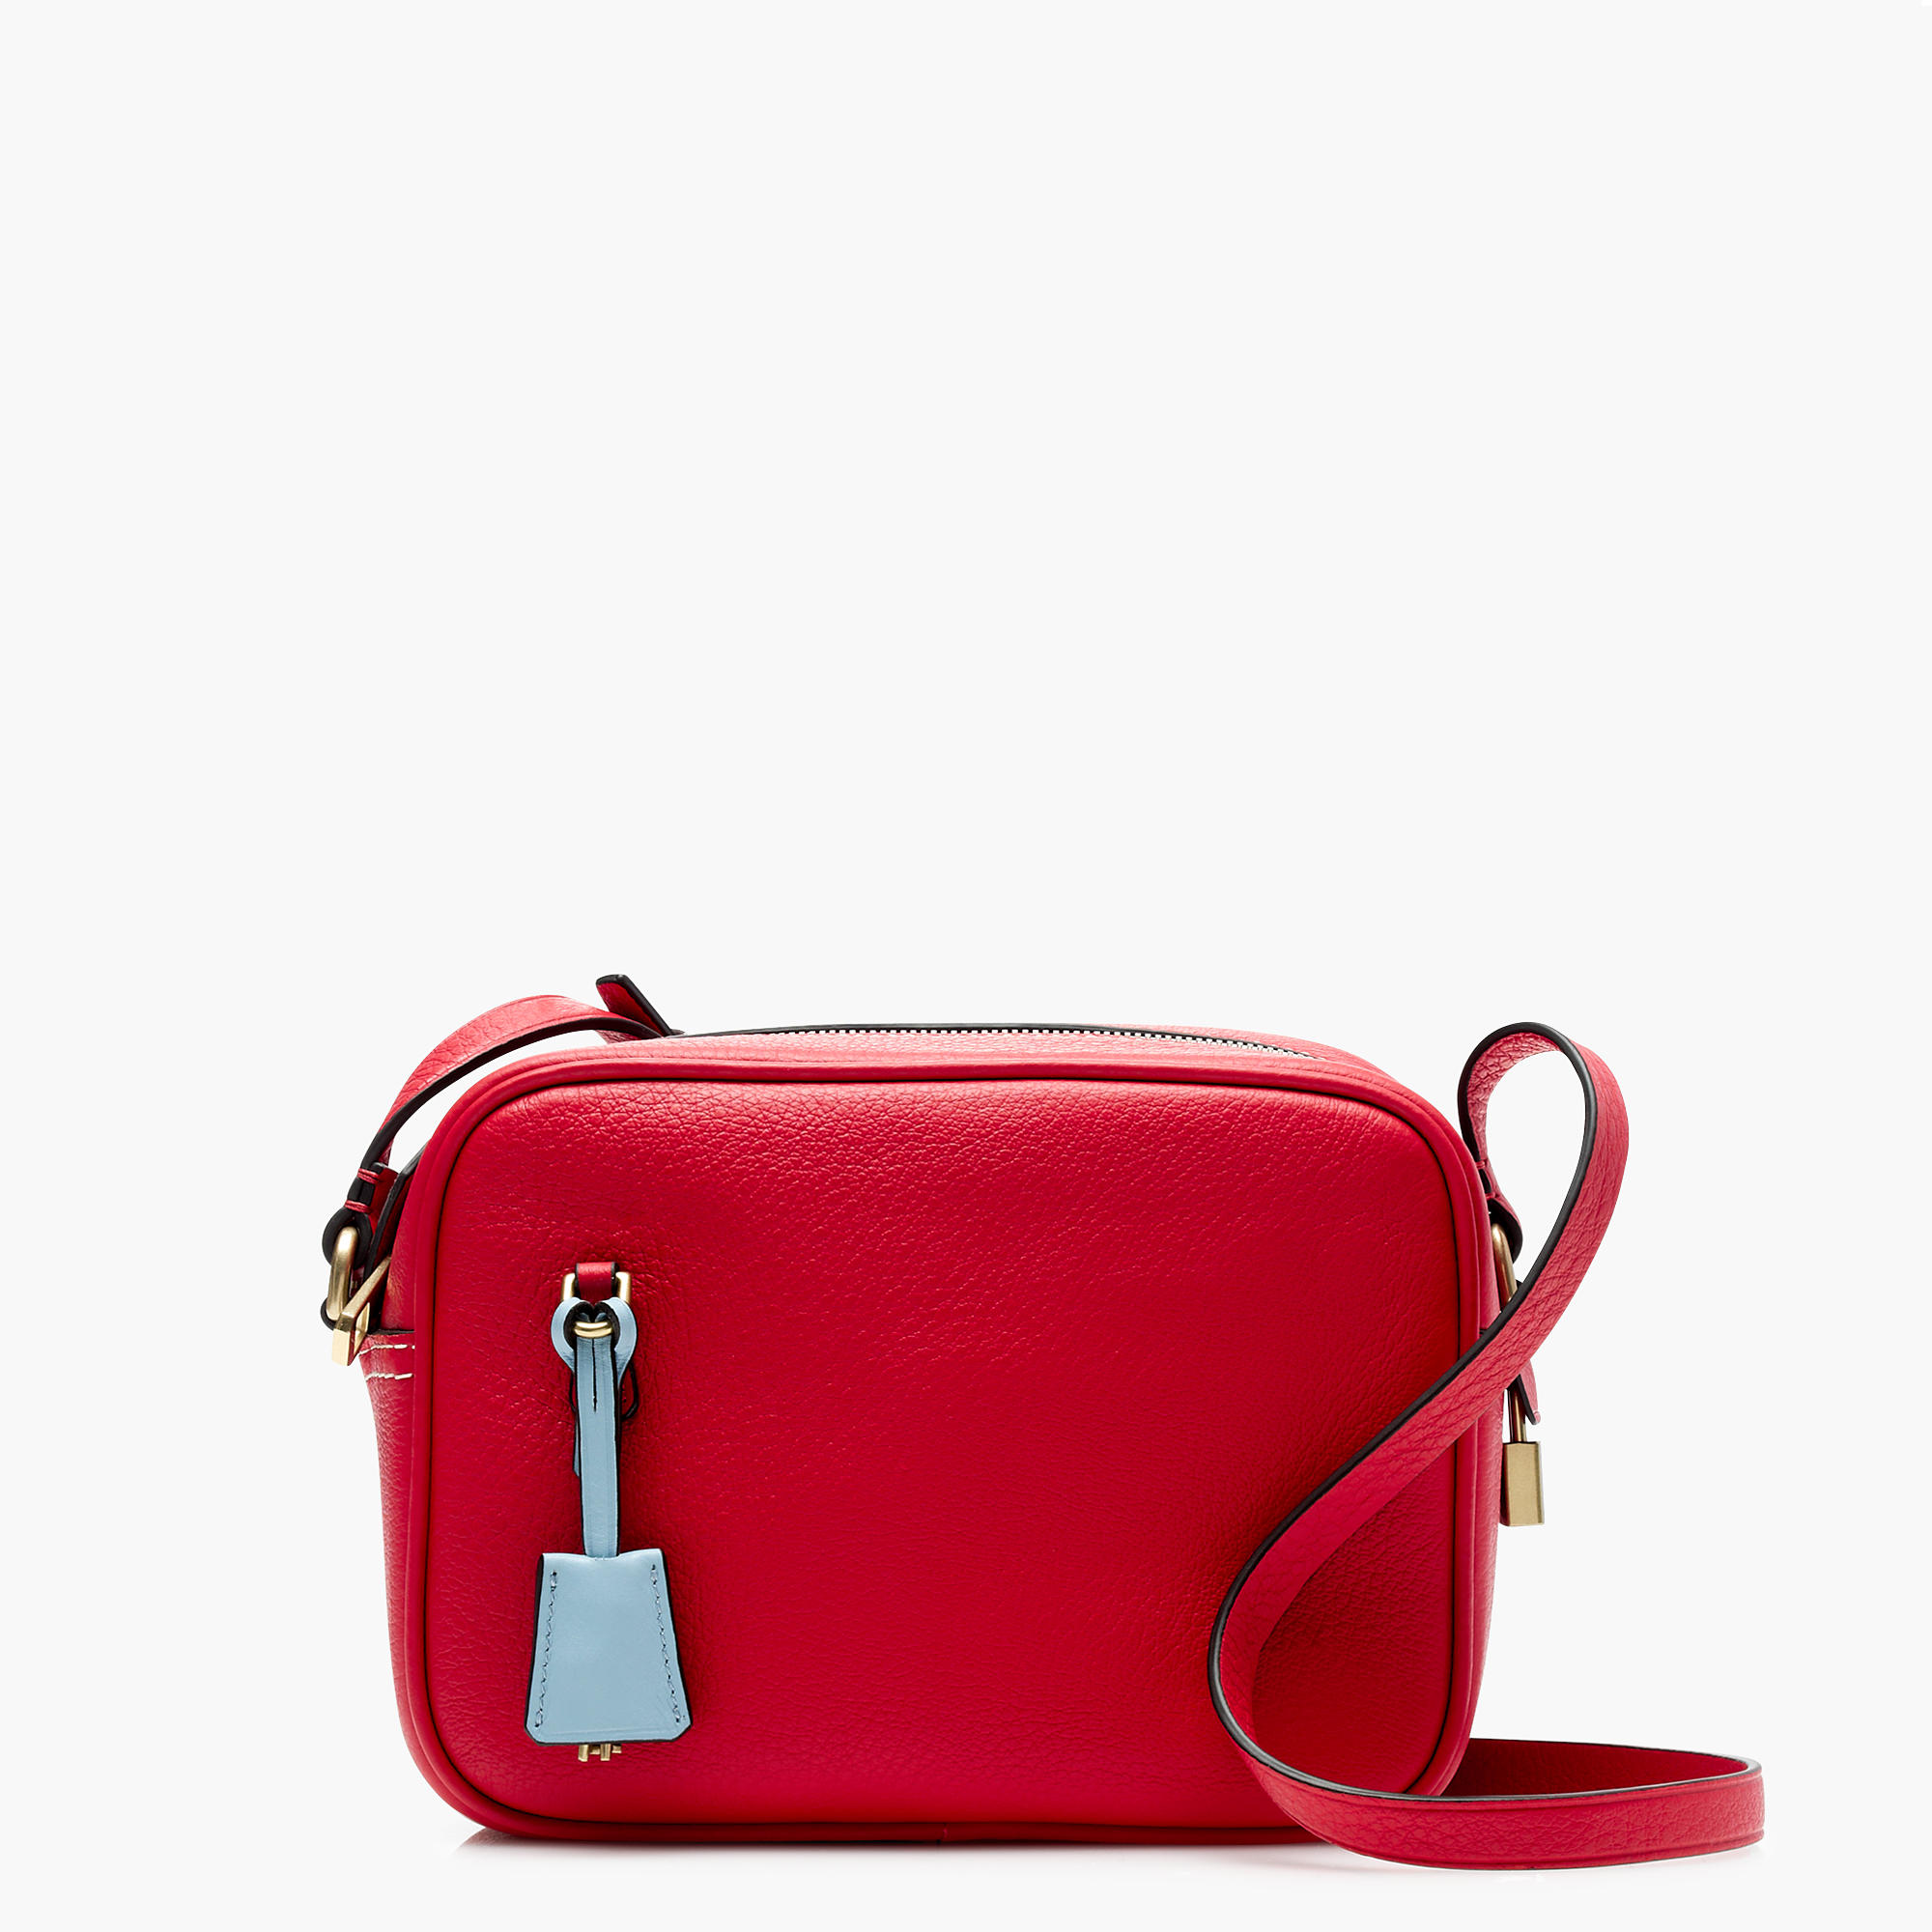 J.Crew Signet Bags in Italian Leather, Festival Red